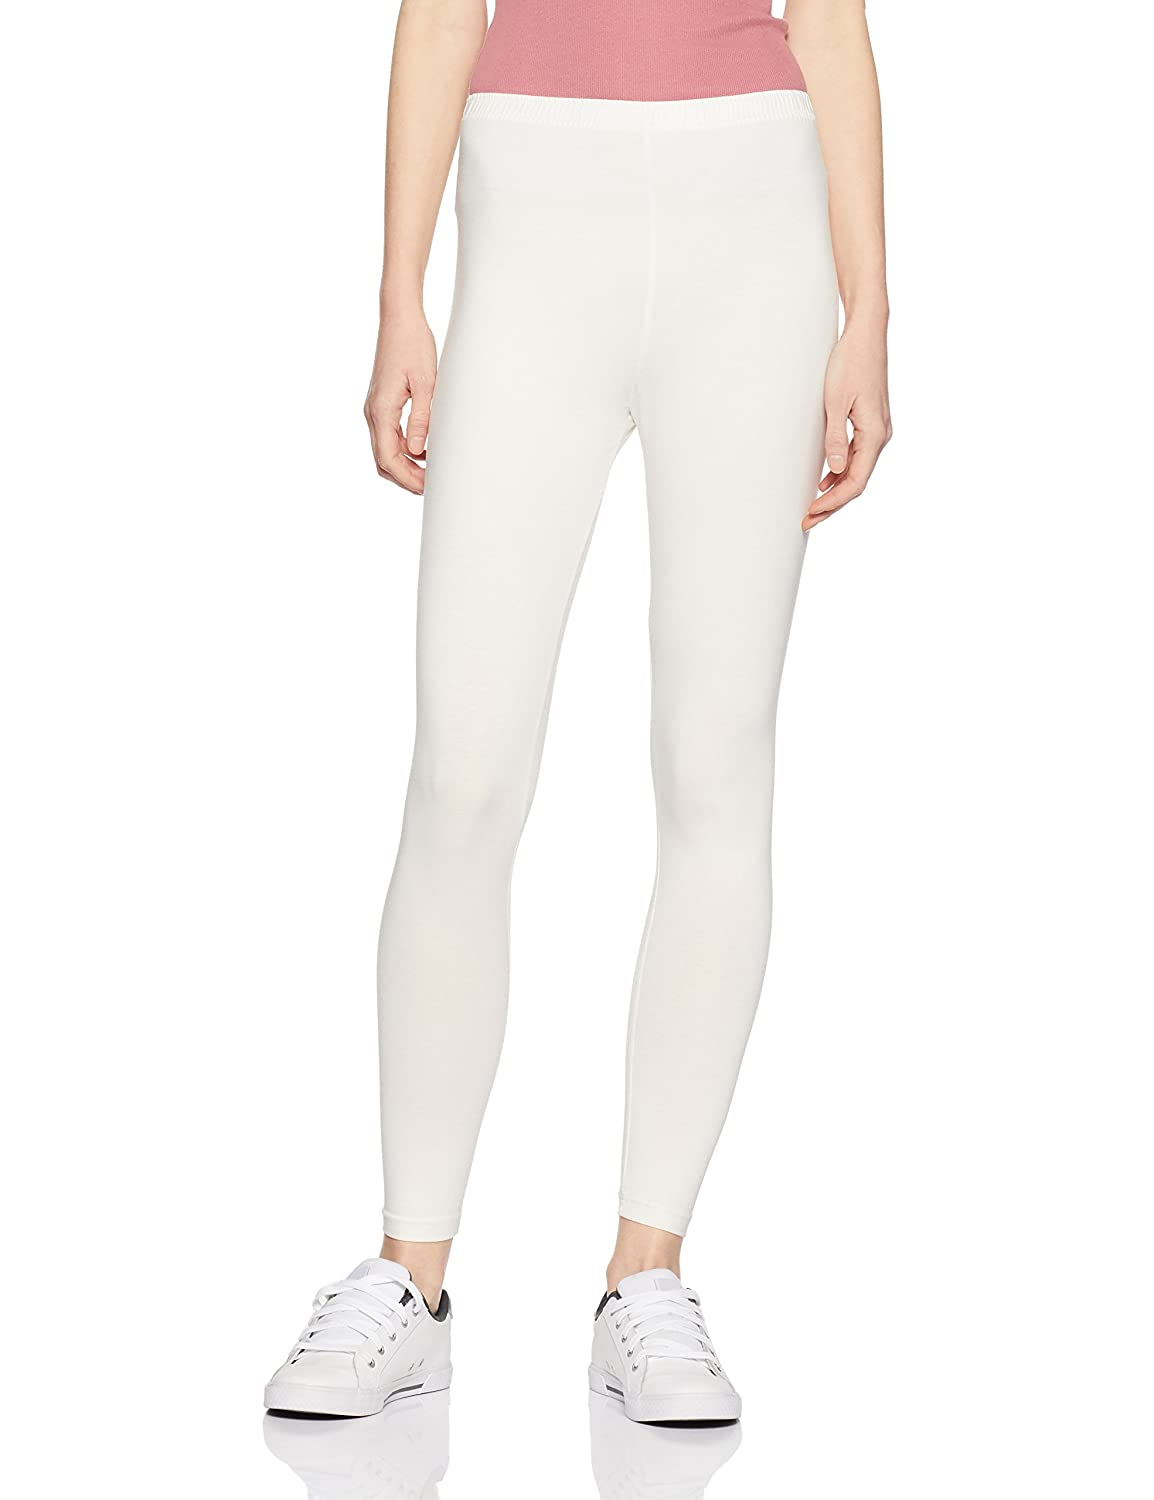 LUX LYRA Women's Leggings (LYRA AL Legg Off White 09_Free...